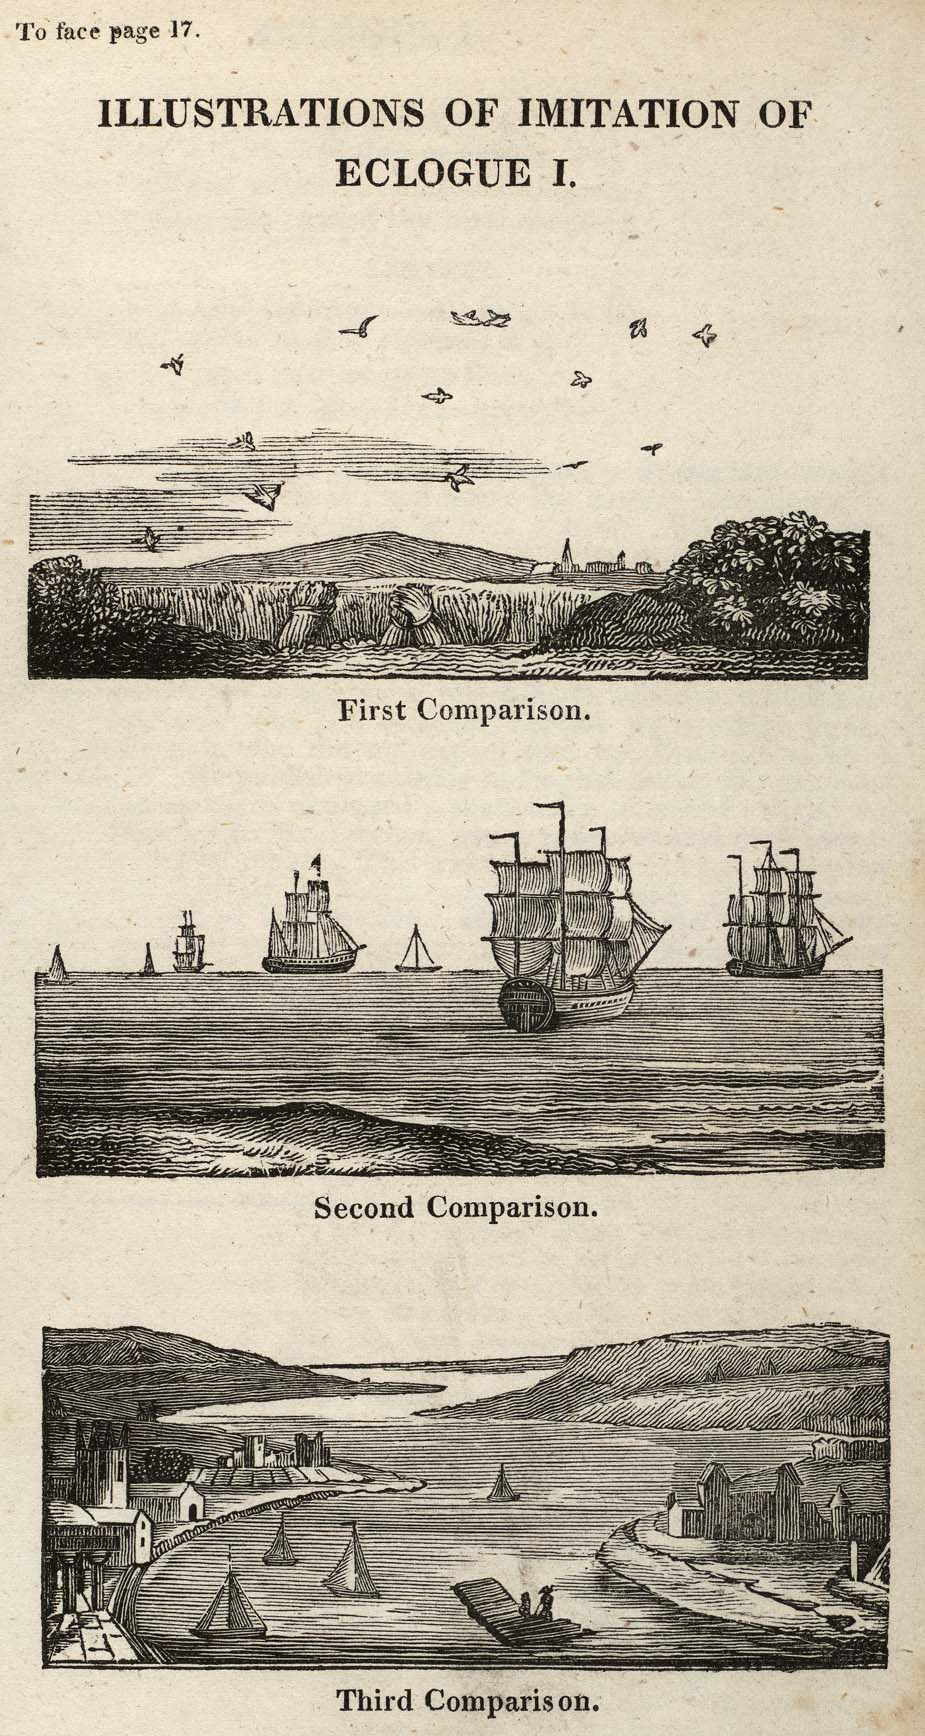 To face page 17. 	ILLUSTRATIONS OF IMITATION OF 	ECLOGUE I. 	First Comparison. 	Second Comparison. 	Third Comparison.